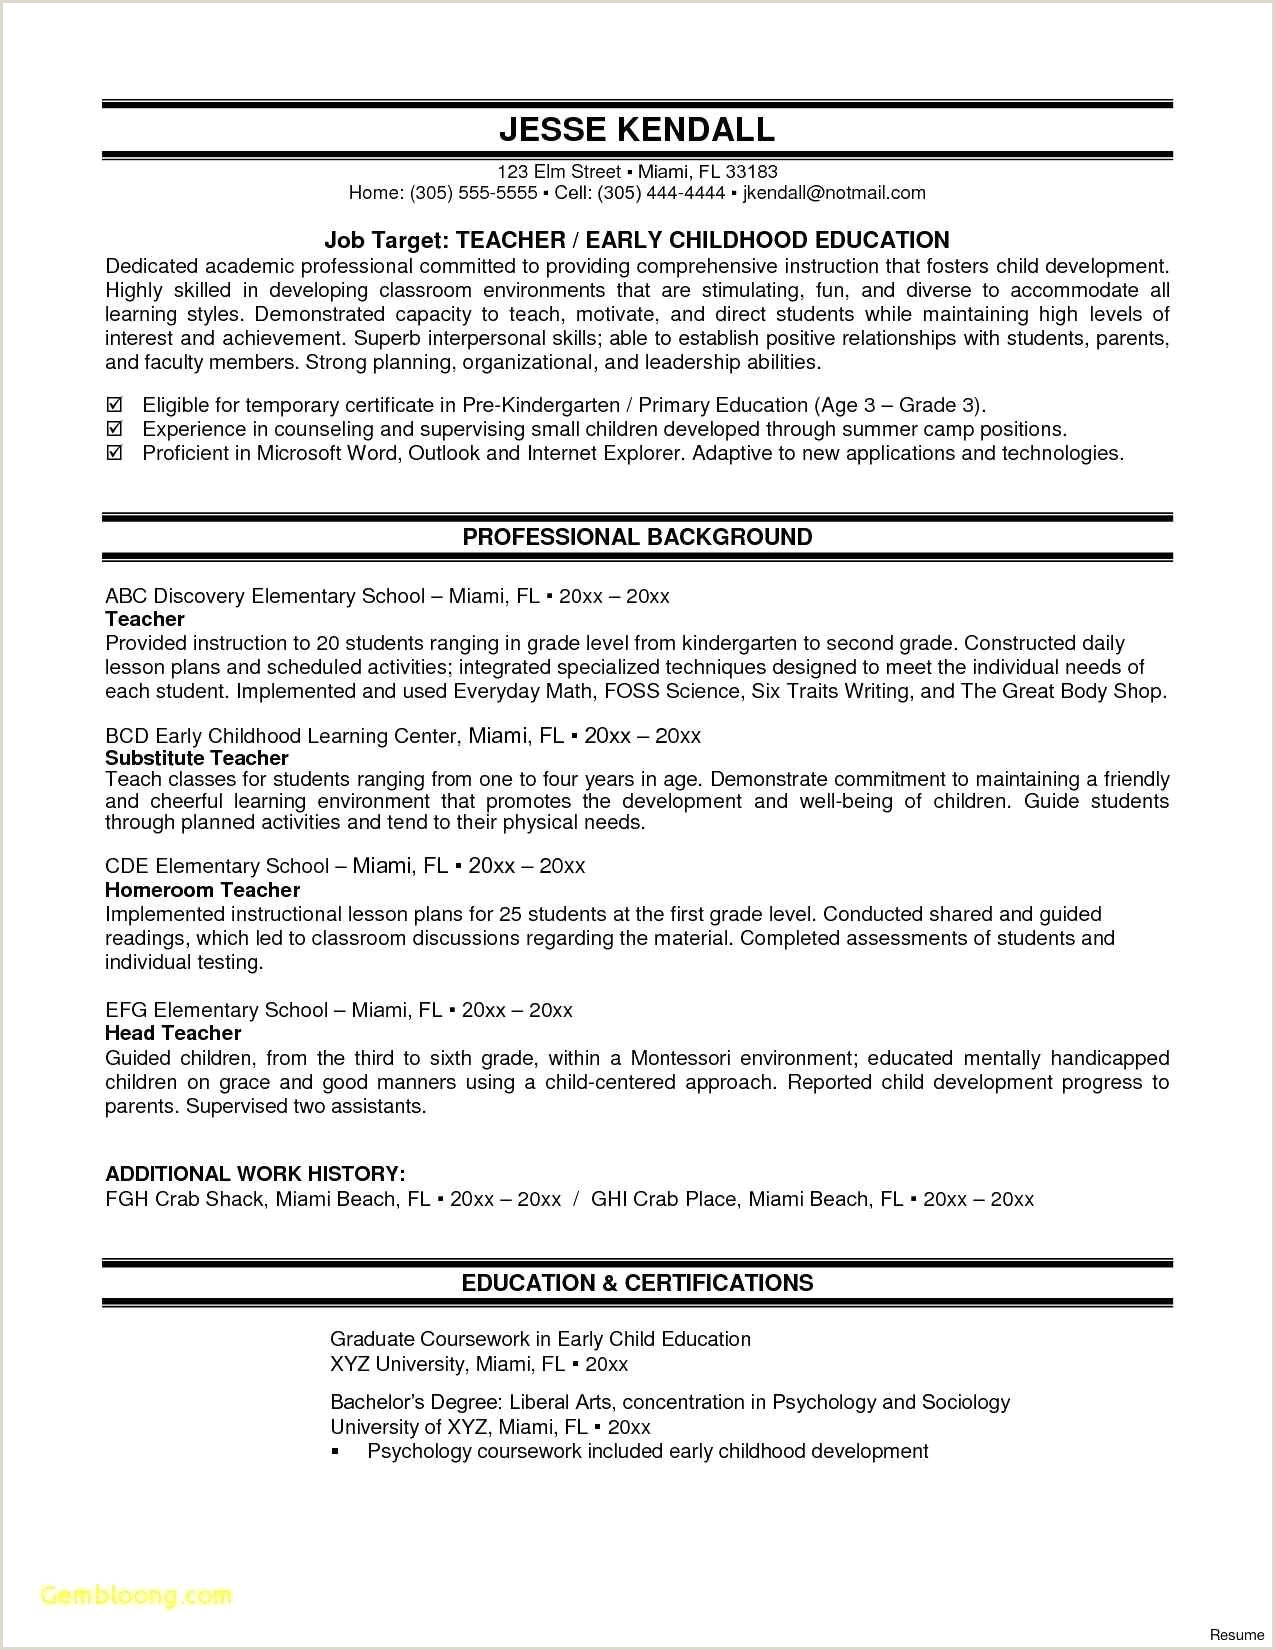 School Counselor Resume Templates Microsoft Word Free Resume Templates